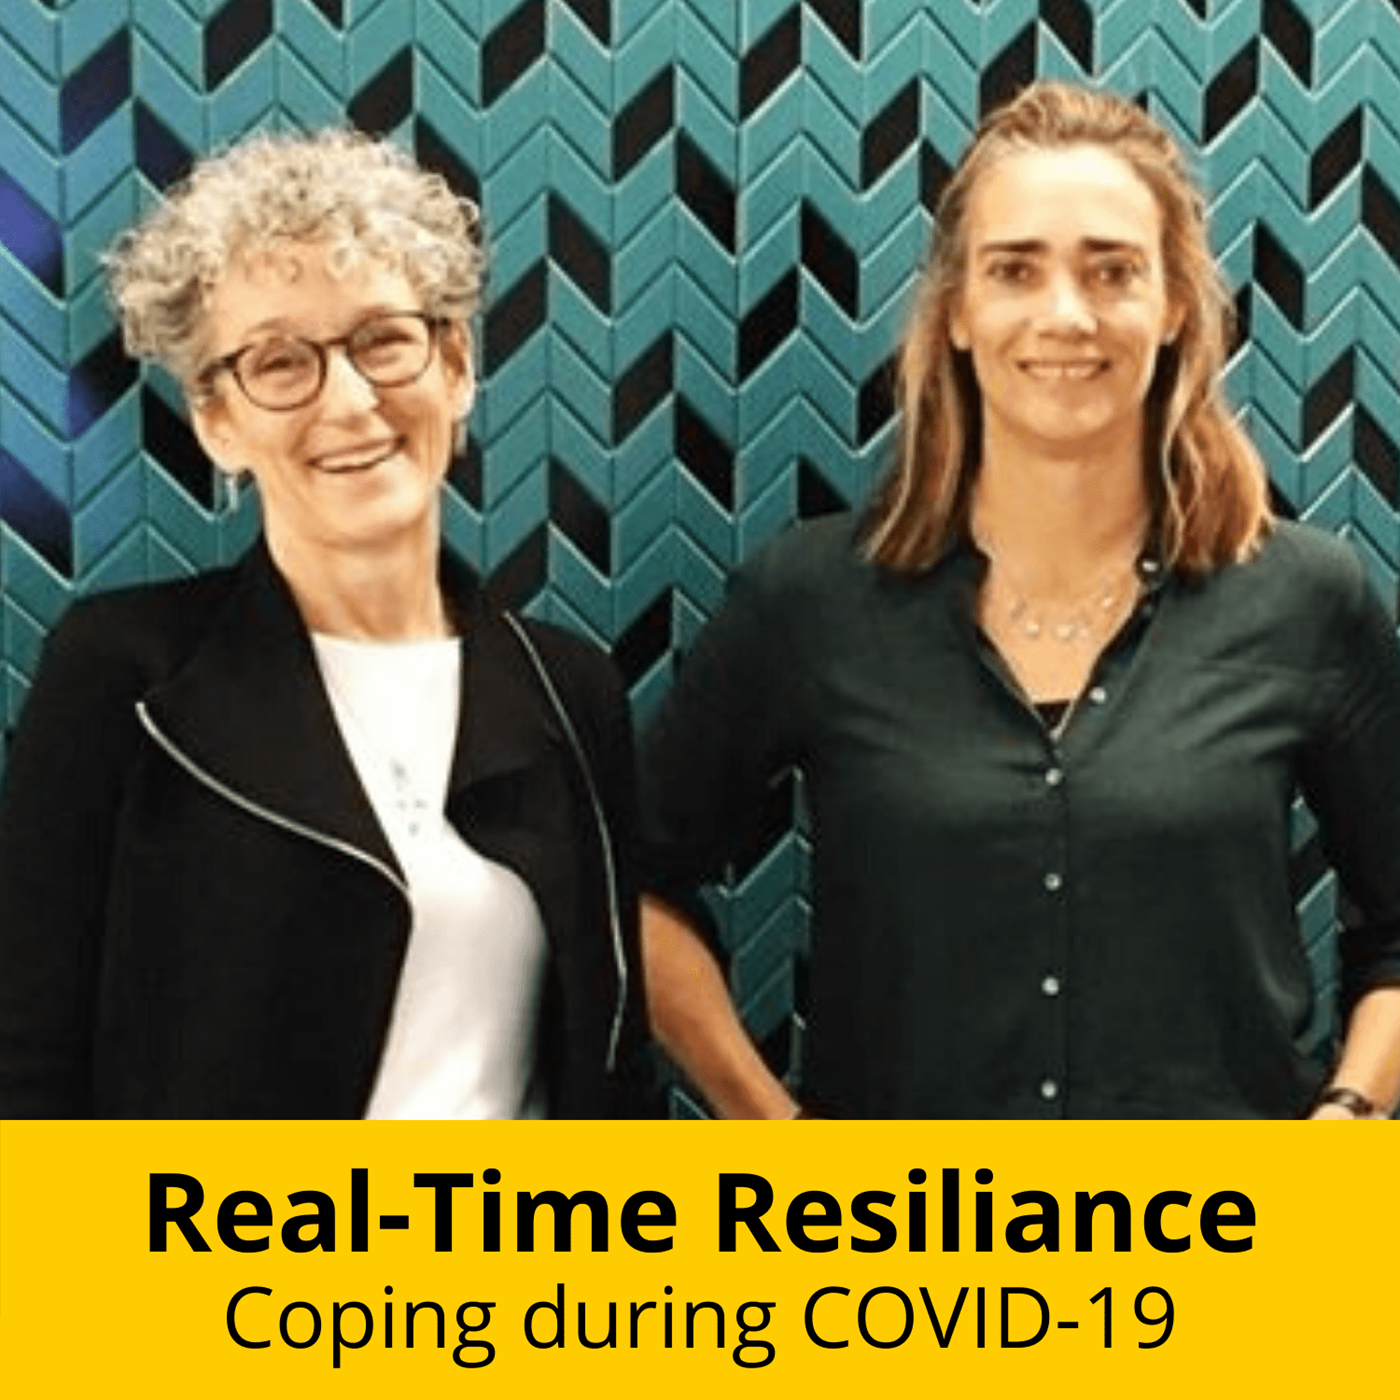 Real-time Resilience: Coping during COVID-19 - 09-04-2020 - 04 - Cut Me Some Slack